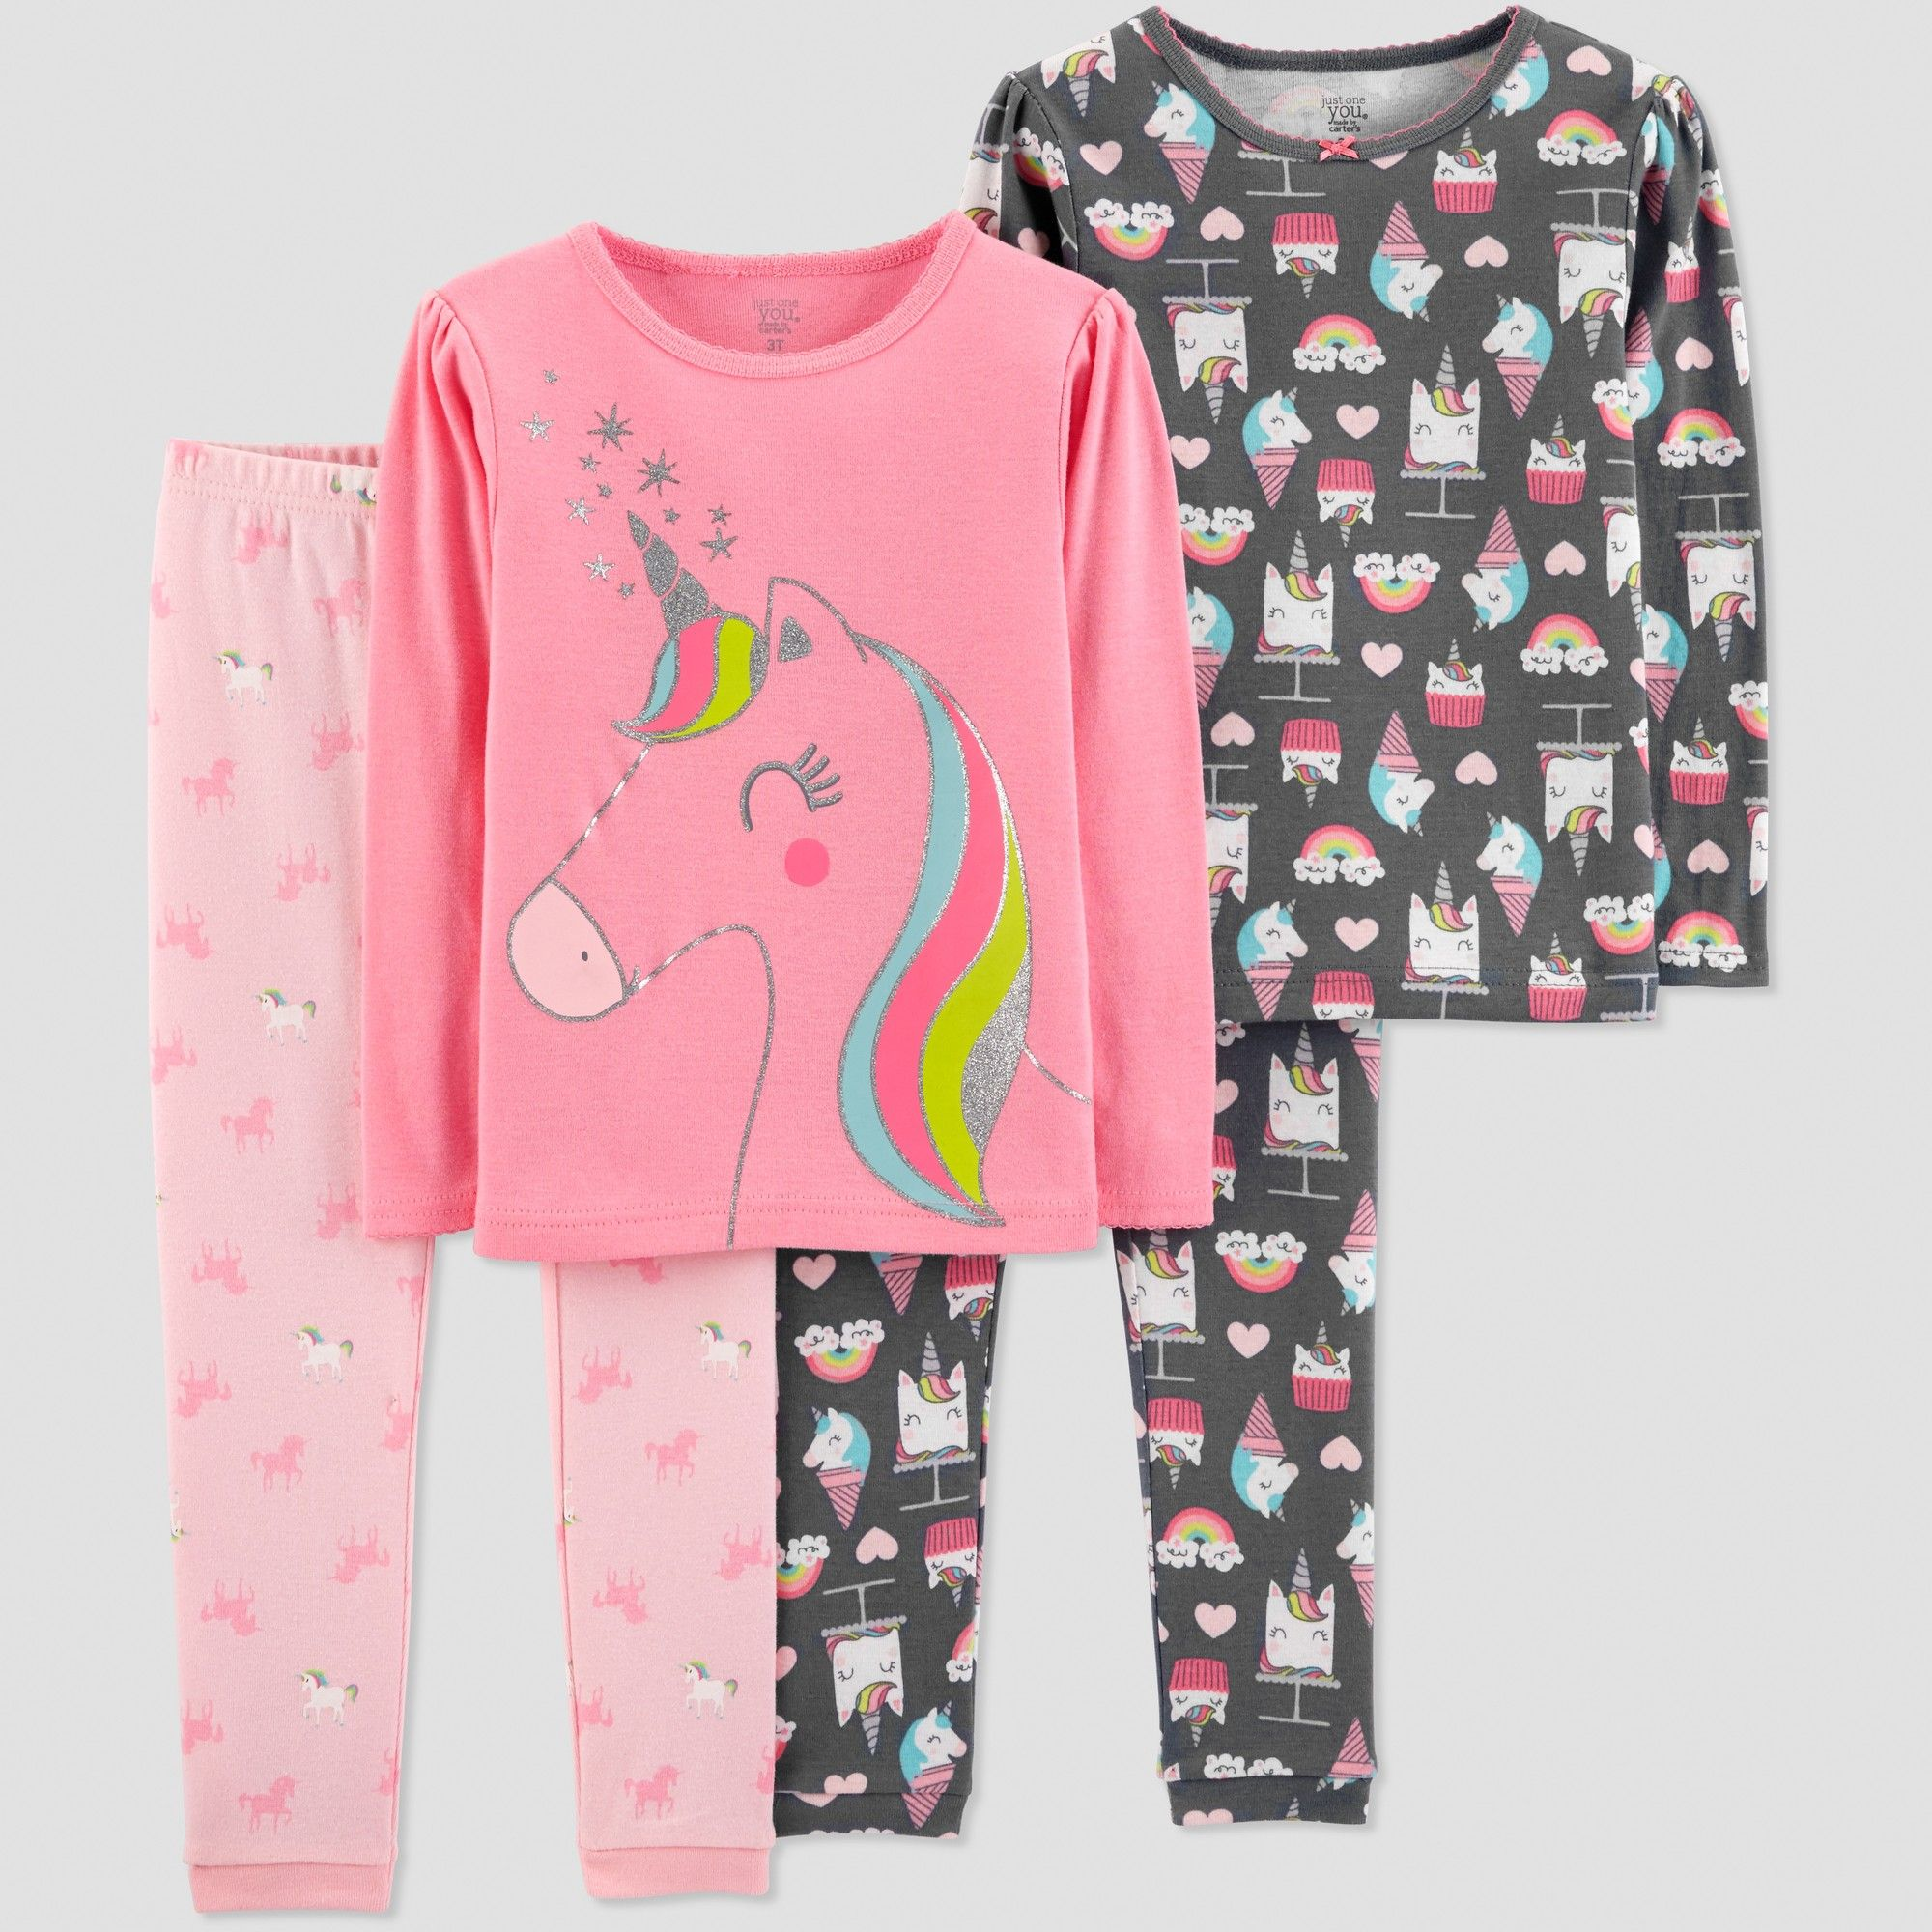 44fffa0f7799 Baby Girls  4pc Unicorn Pajama Set - Just One You made by carter s ...